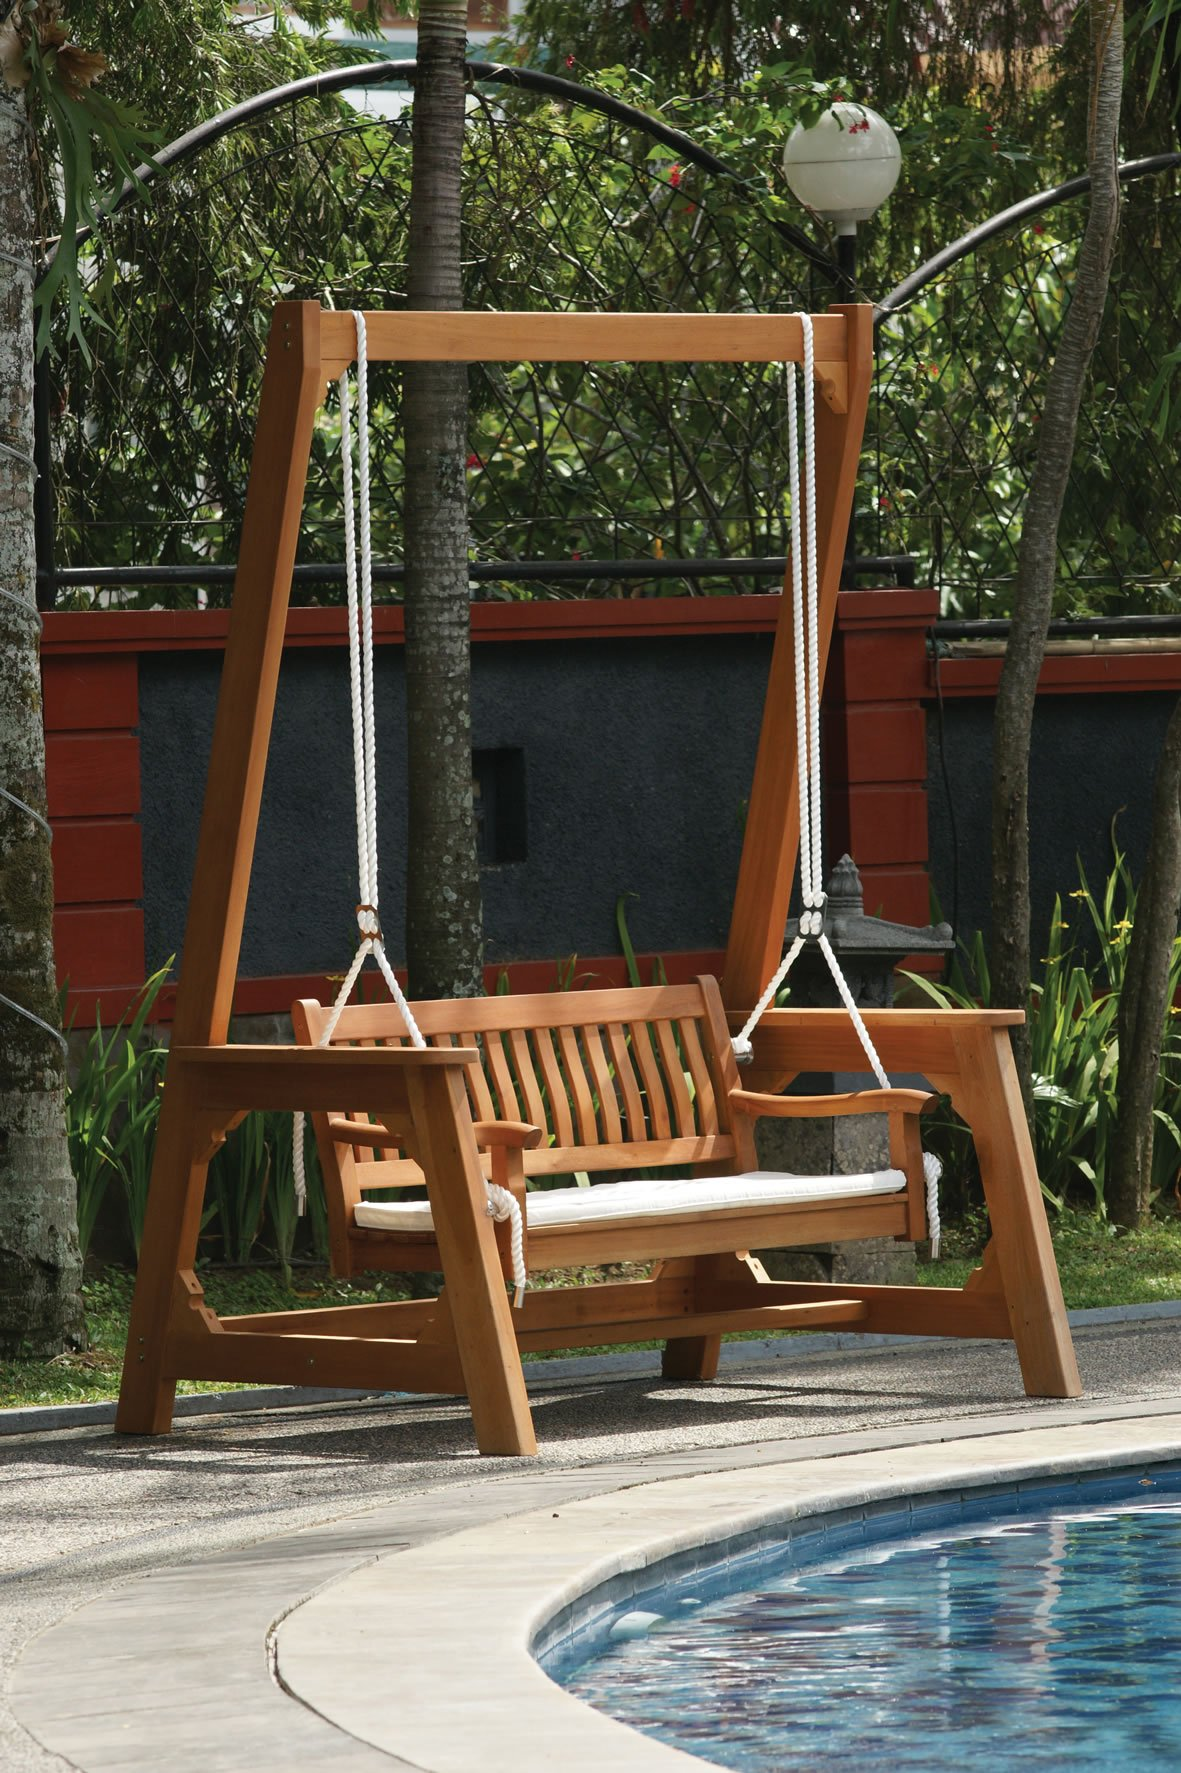 hardwood garden swing bench. Black Bedroom Furniture Sets. Home Design Ideas